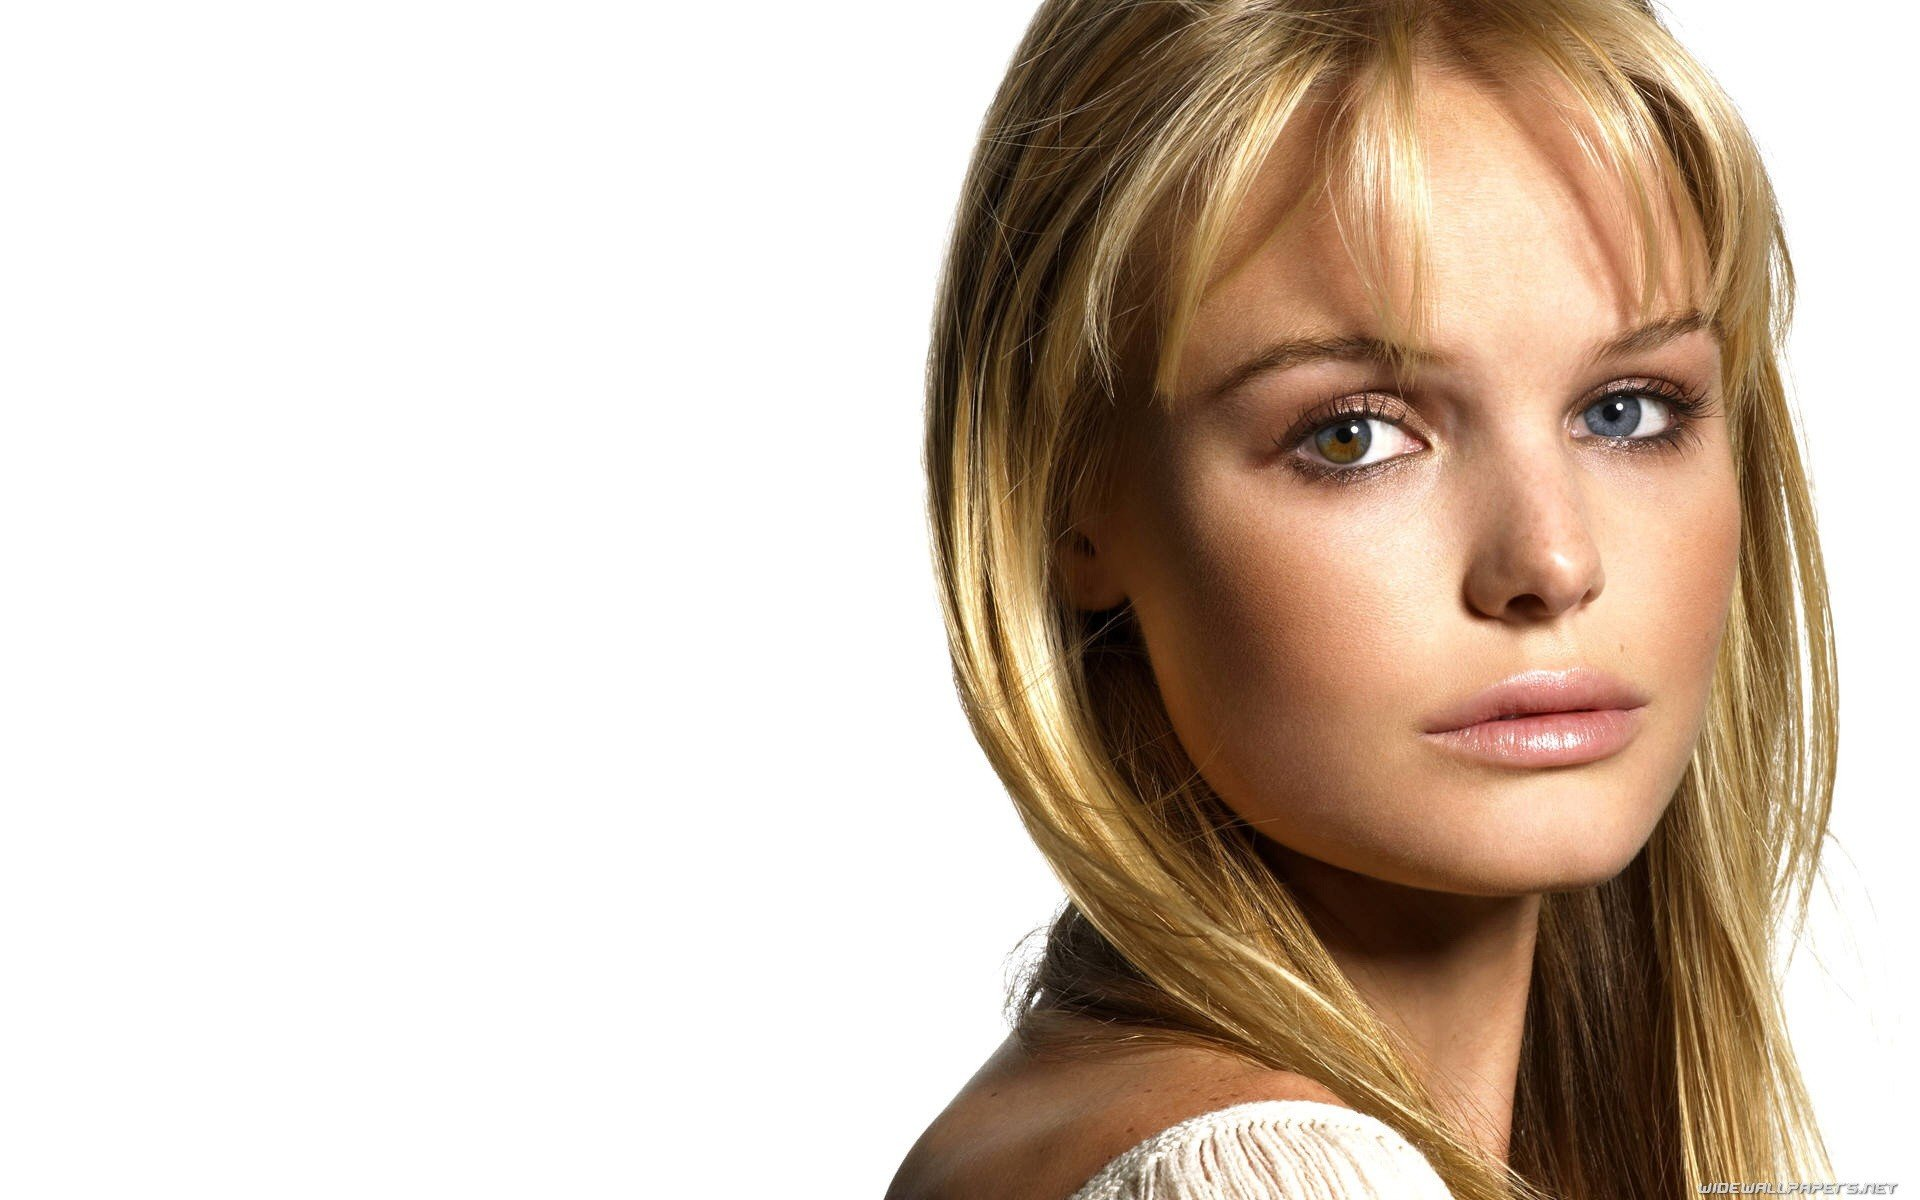 High resolution Kate Bosworth hd 1920x1200 background ID:130377 for computer